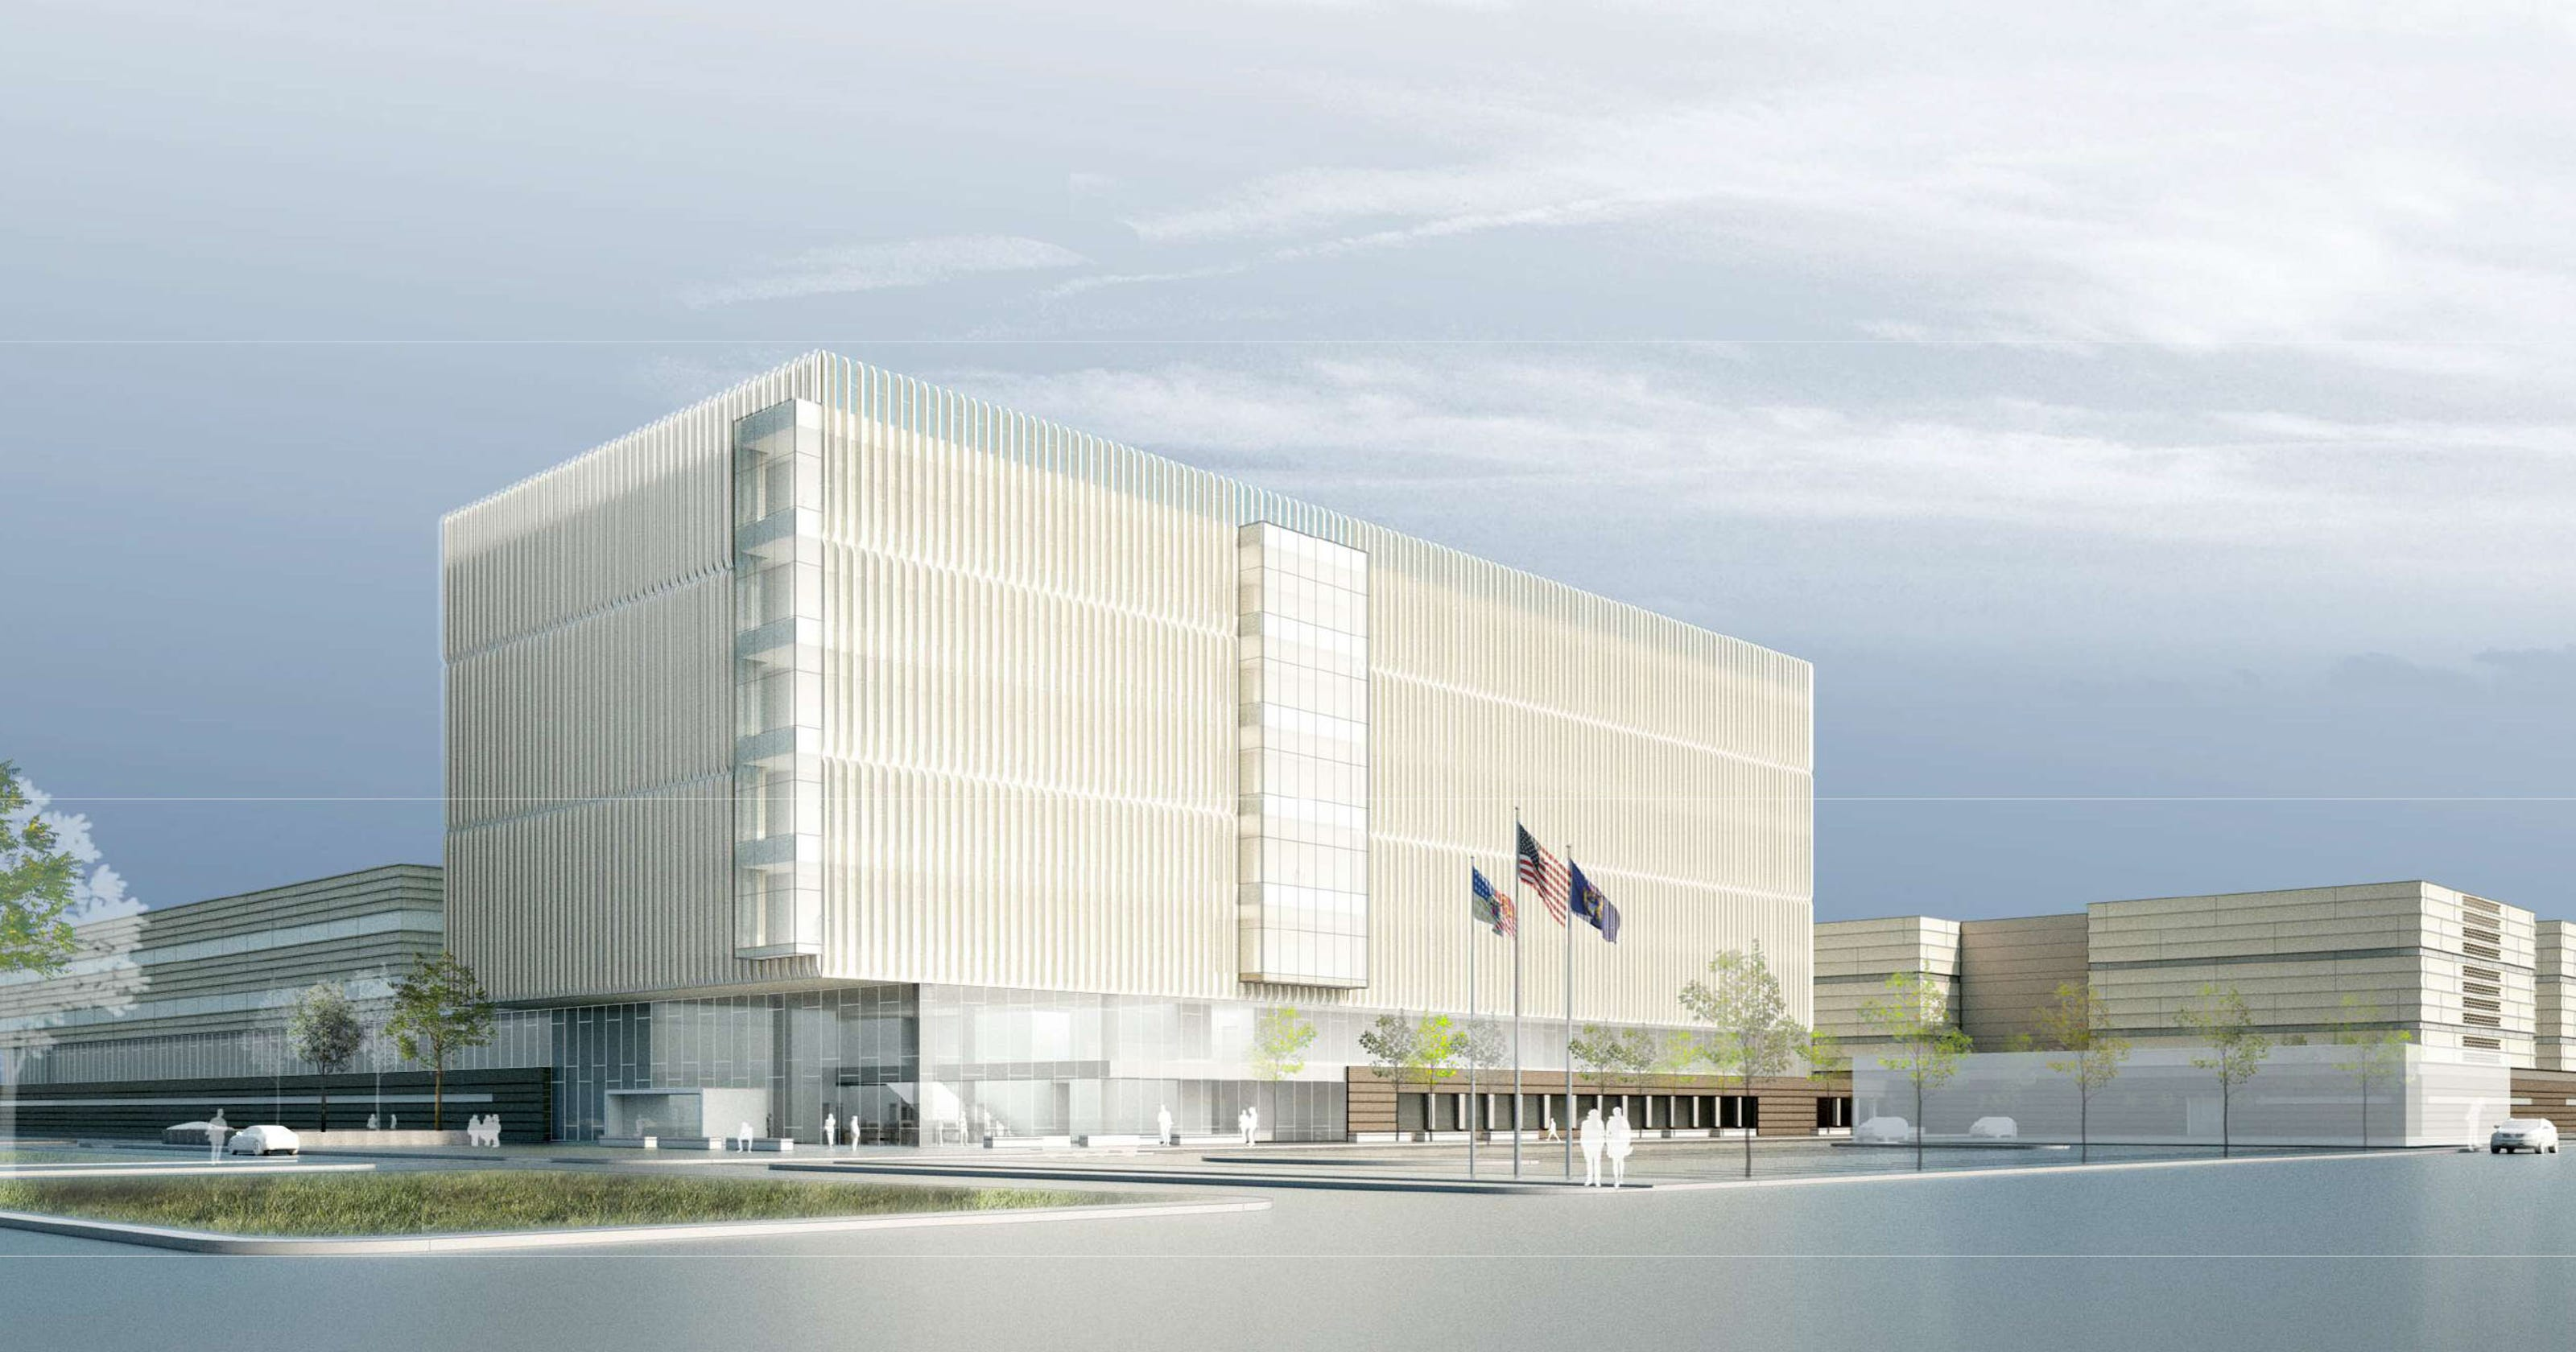 Wayne County jail finally gets a new home in Detroit